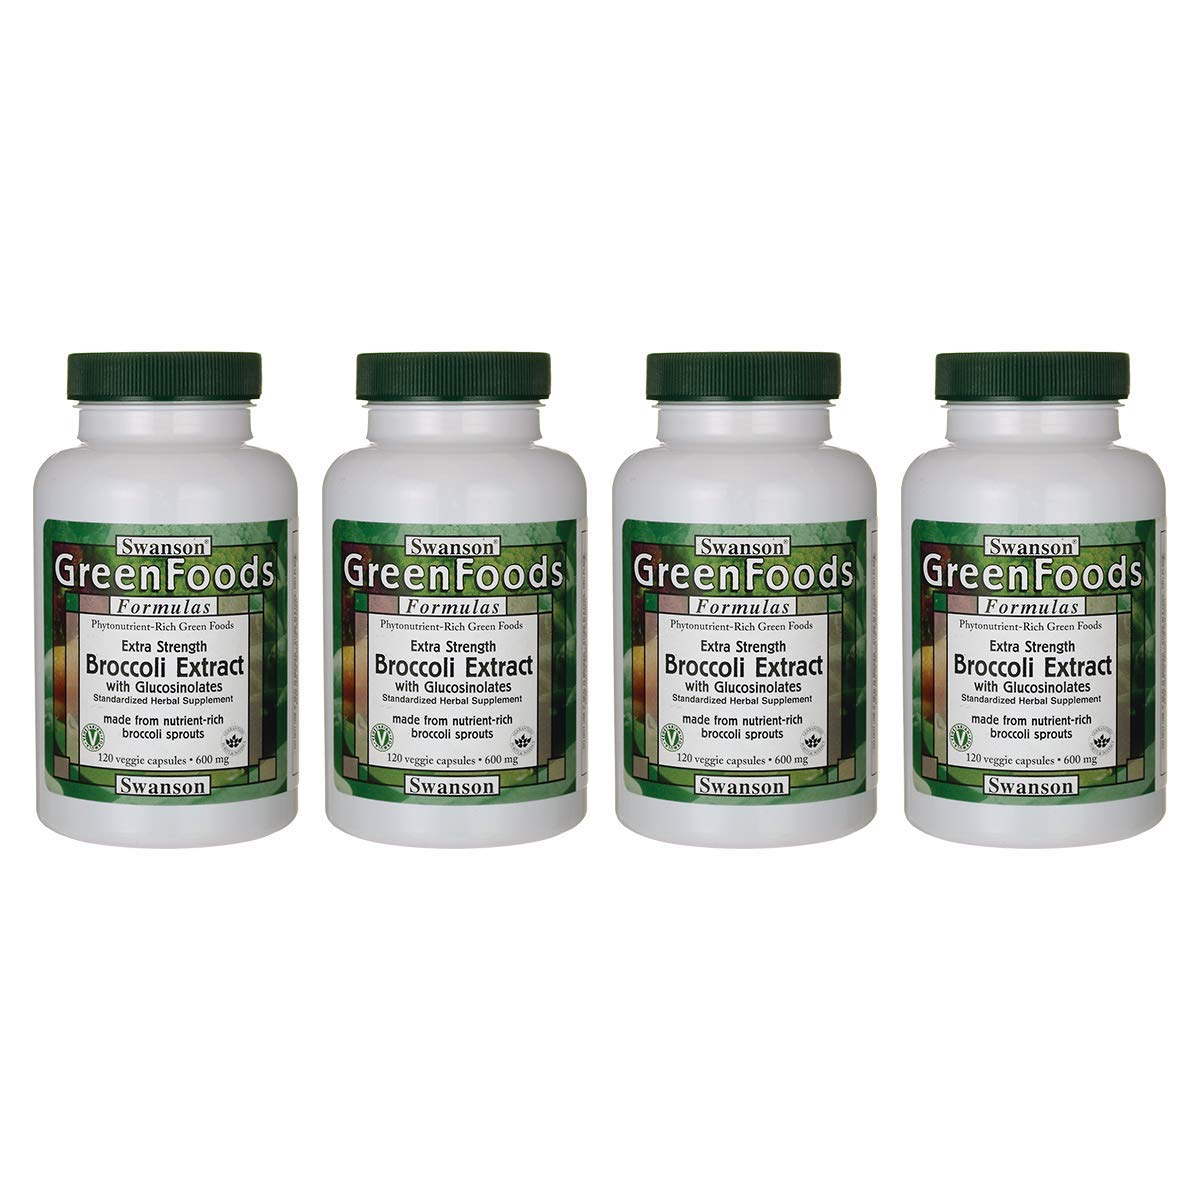 Swanson Extra-Strength Broccoli Extract with Glucosinolates 600 Milligrams 120 Veg Capsules 4 Pack